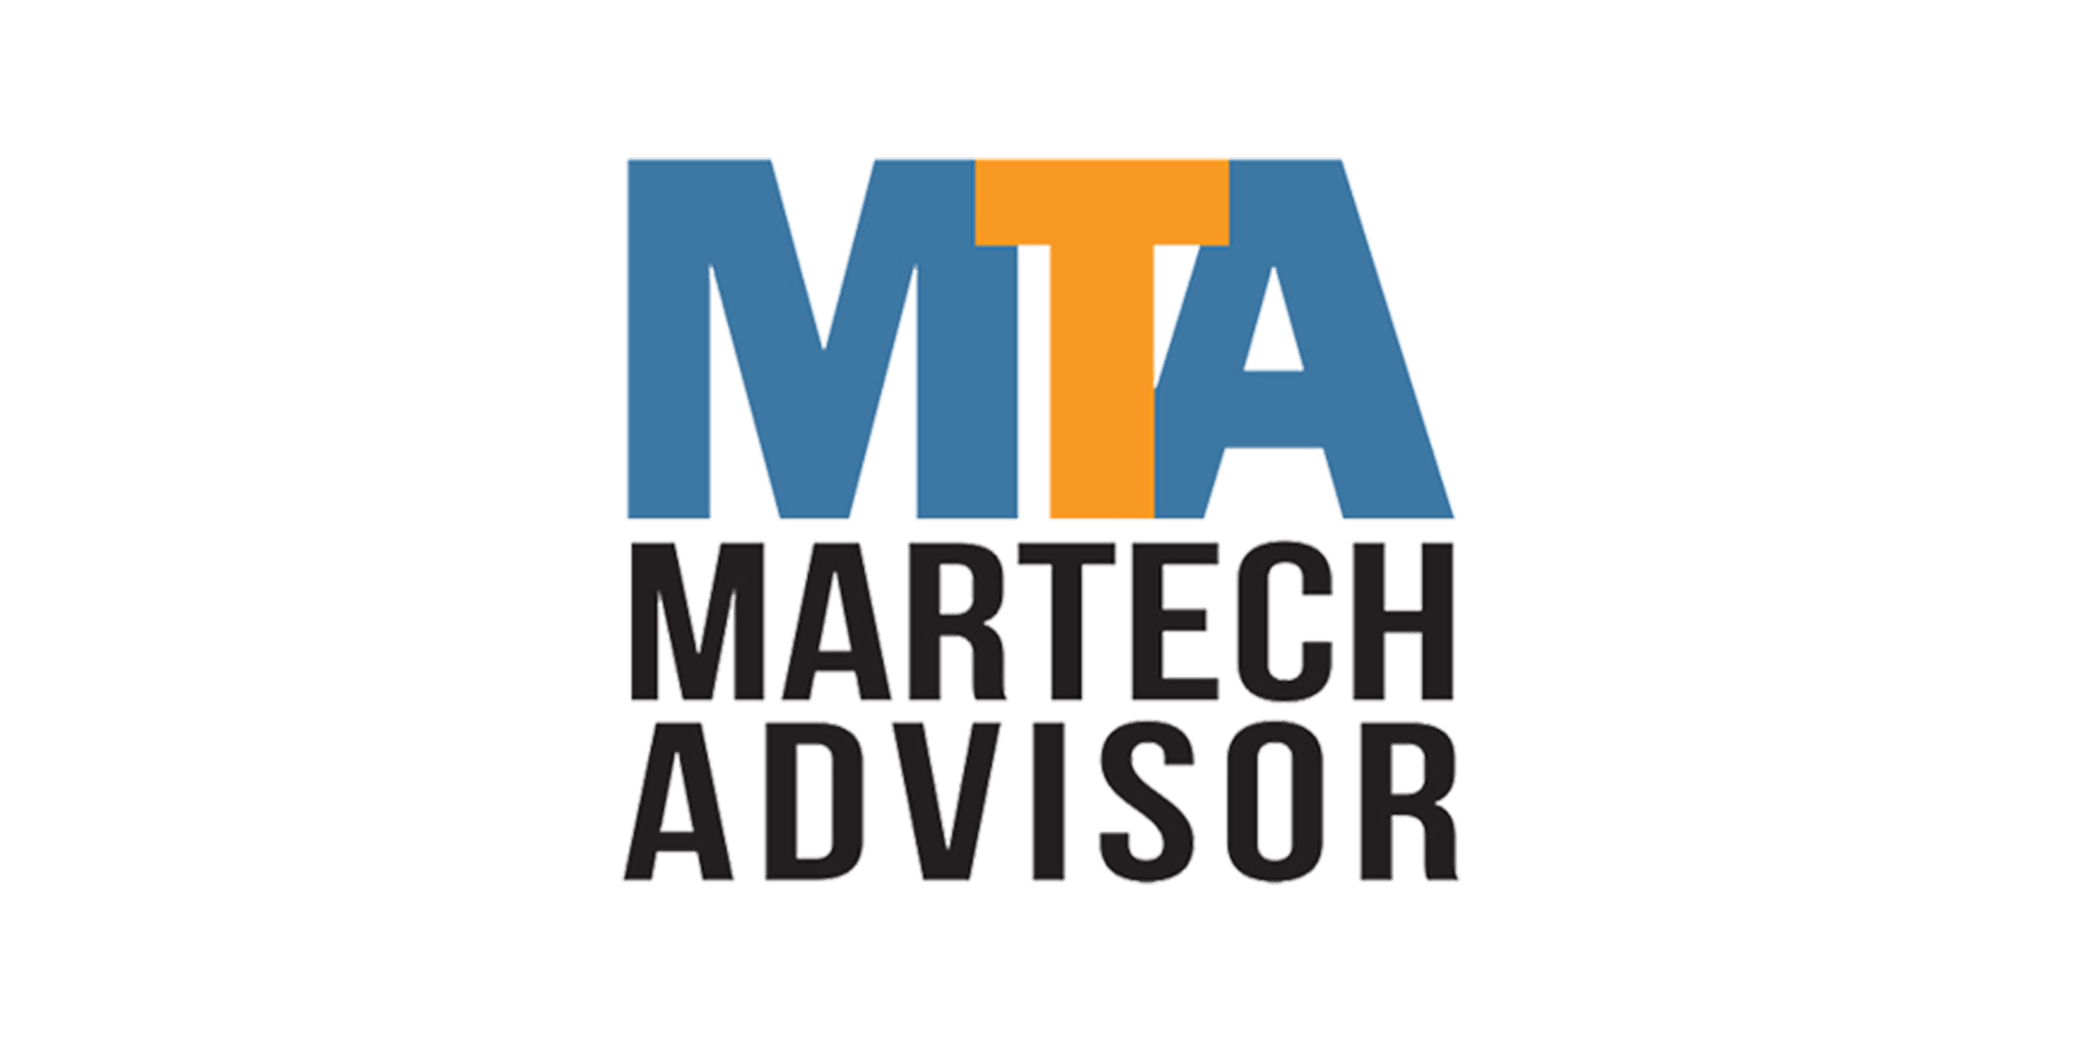 Robert Brill writes for Martech Advisor about hyperlocal advertising